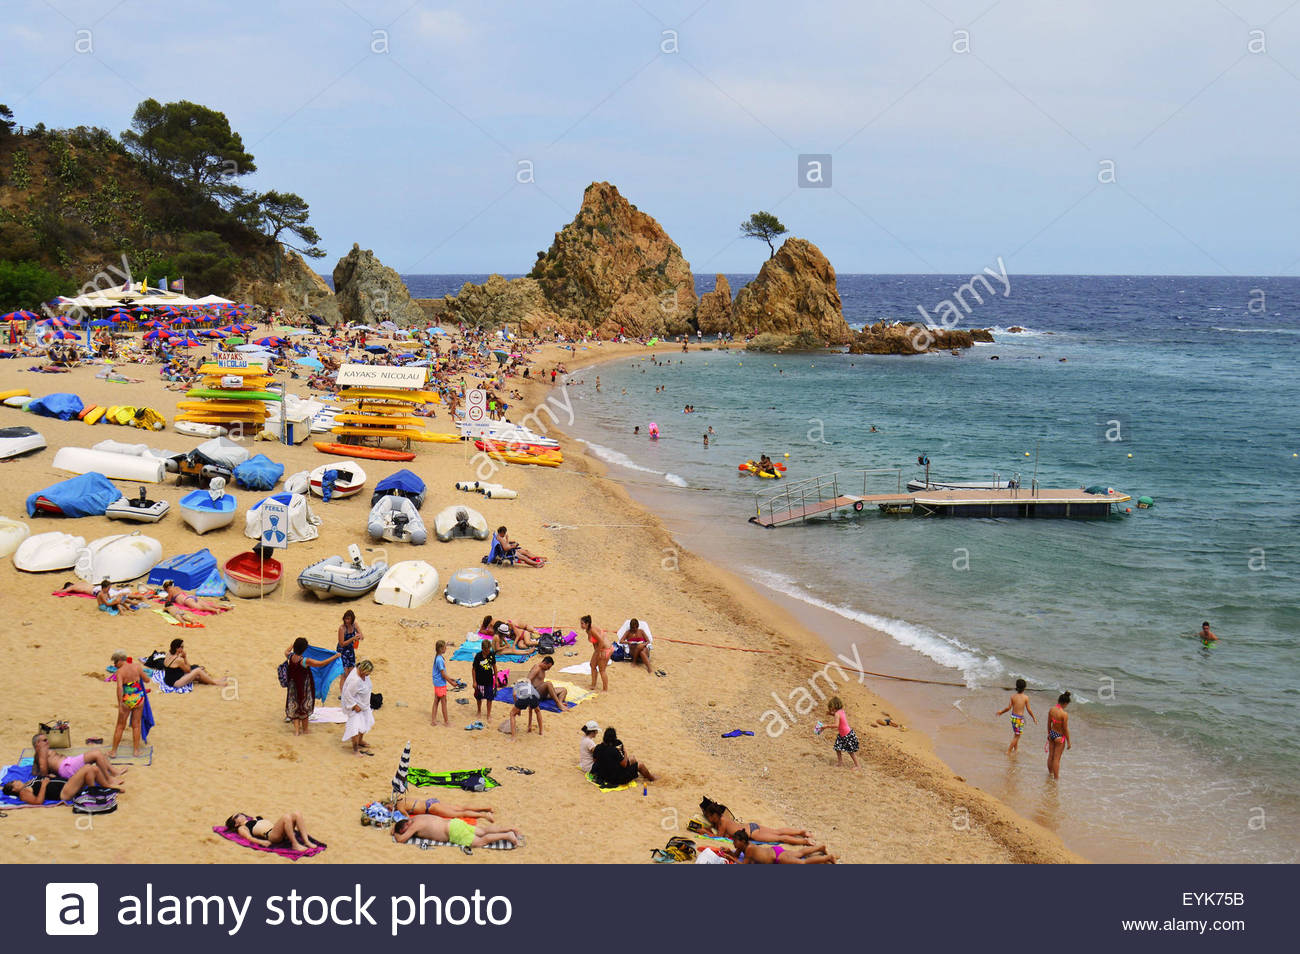 Holidaymakers on the beach of Tossa de Mar Costa Brava Catalonia Spain Europe - Stock Image